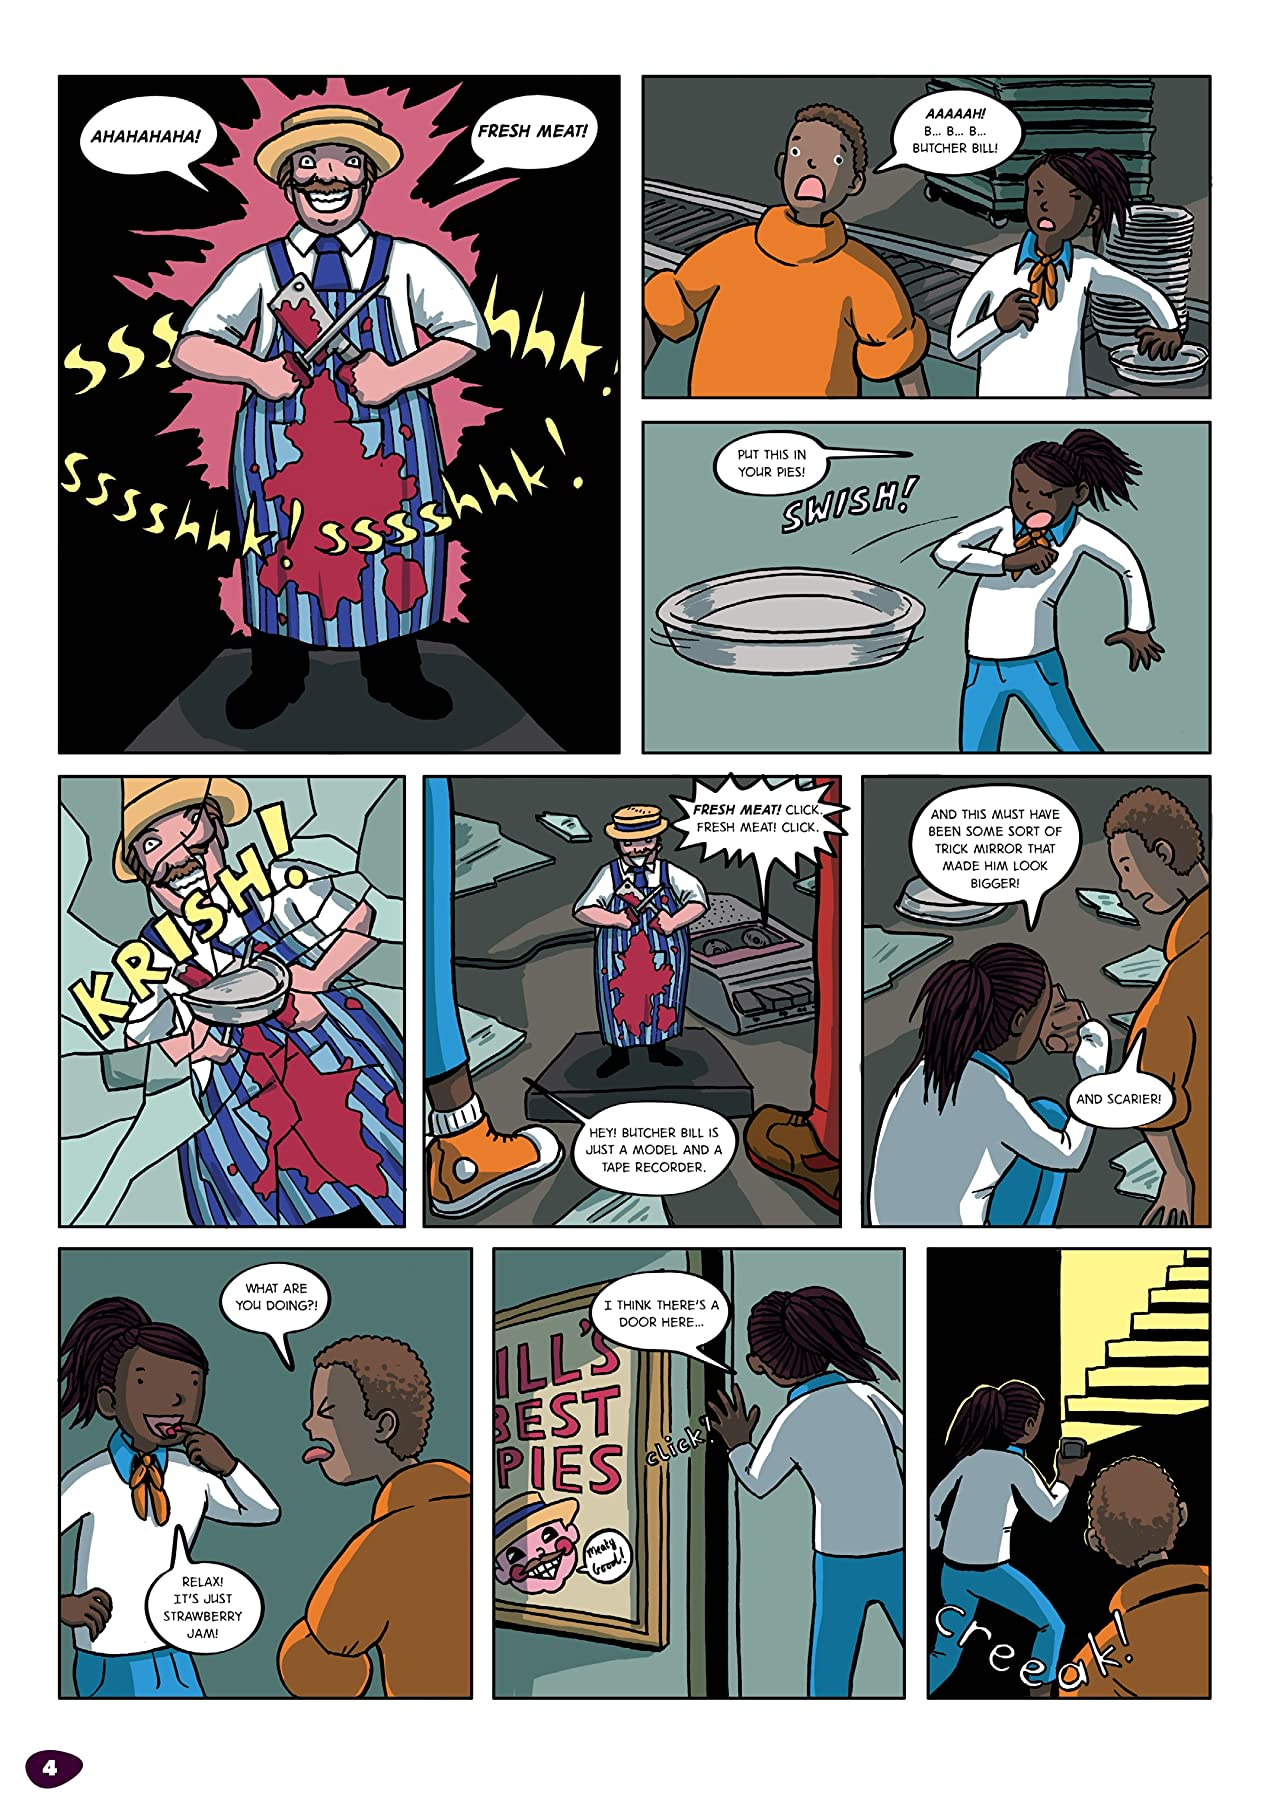 The Phoenix #152: The Weekly Story Comic